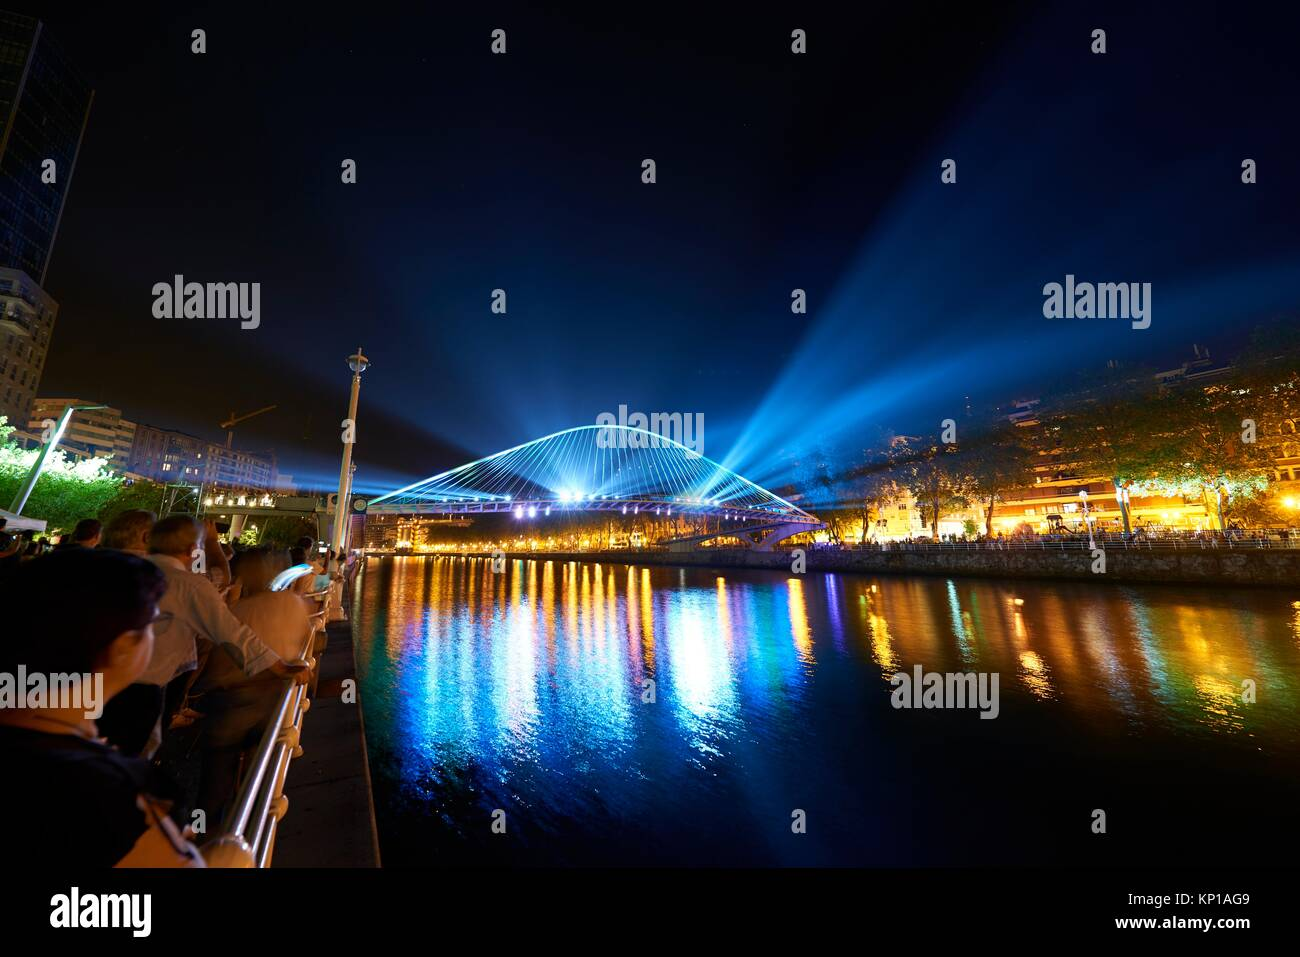 Zubizuri Bridge at night with spectacular light, Bilbao, Basque Country, Euskadi, Spain, Europe - Stock Image